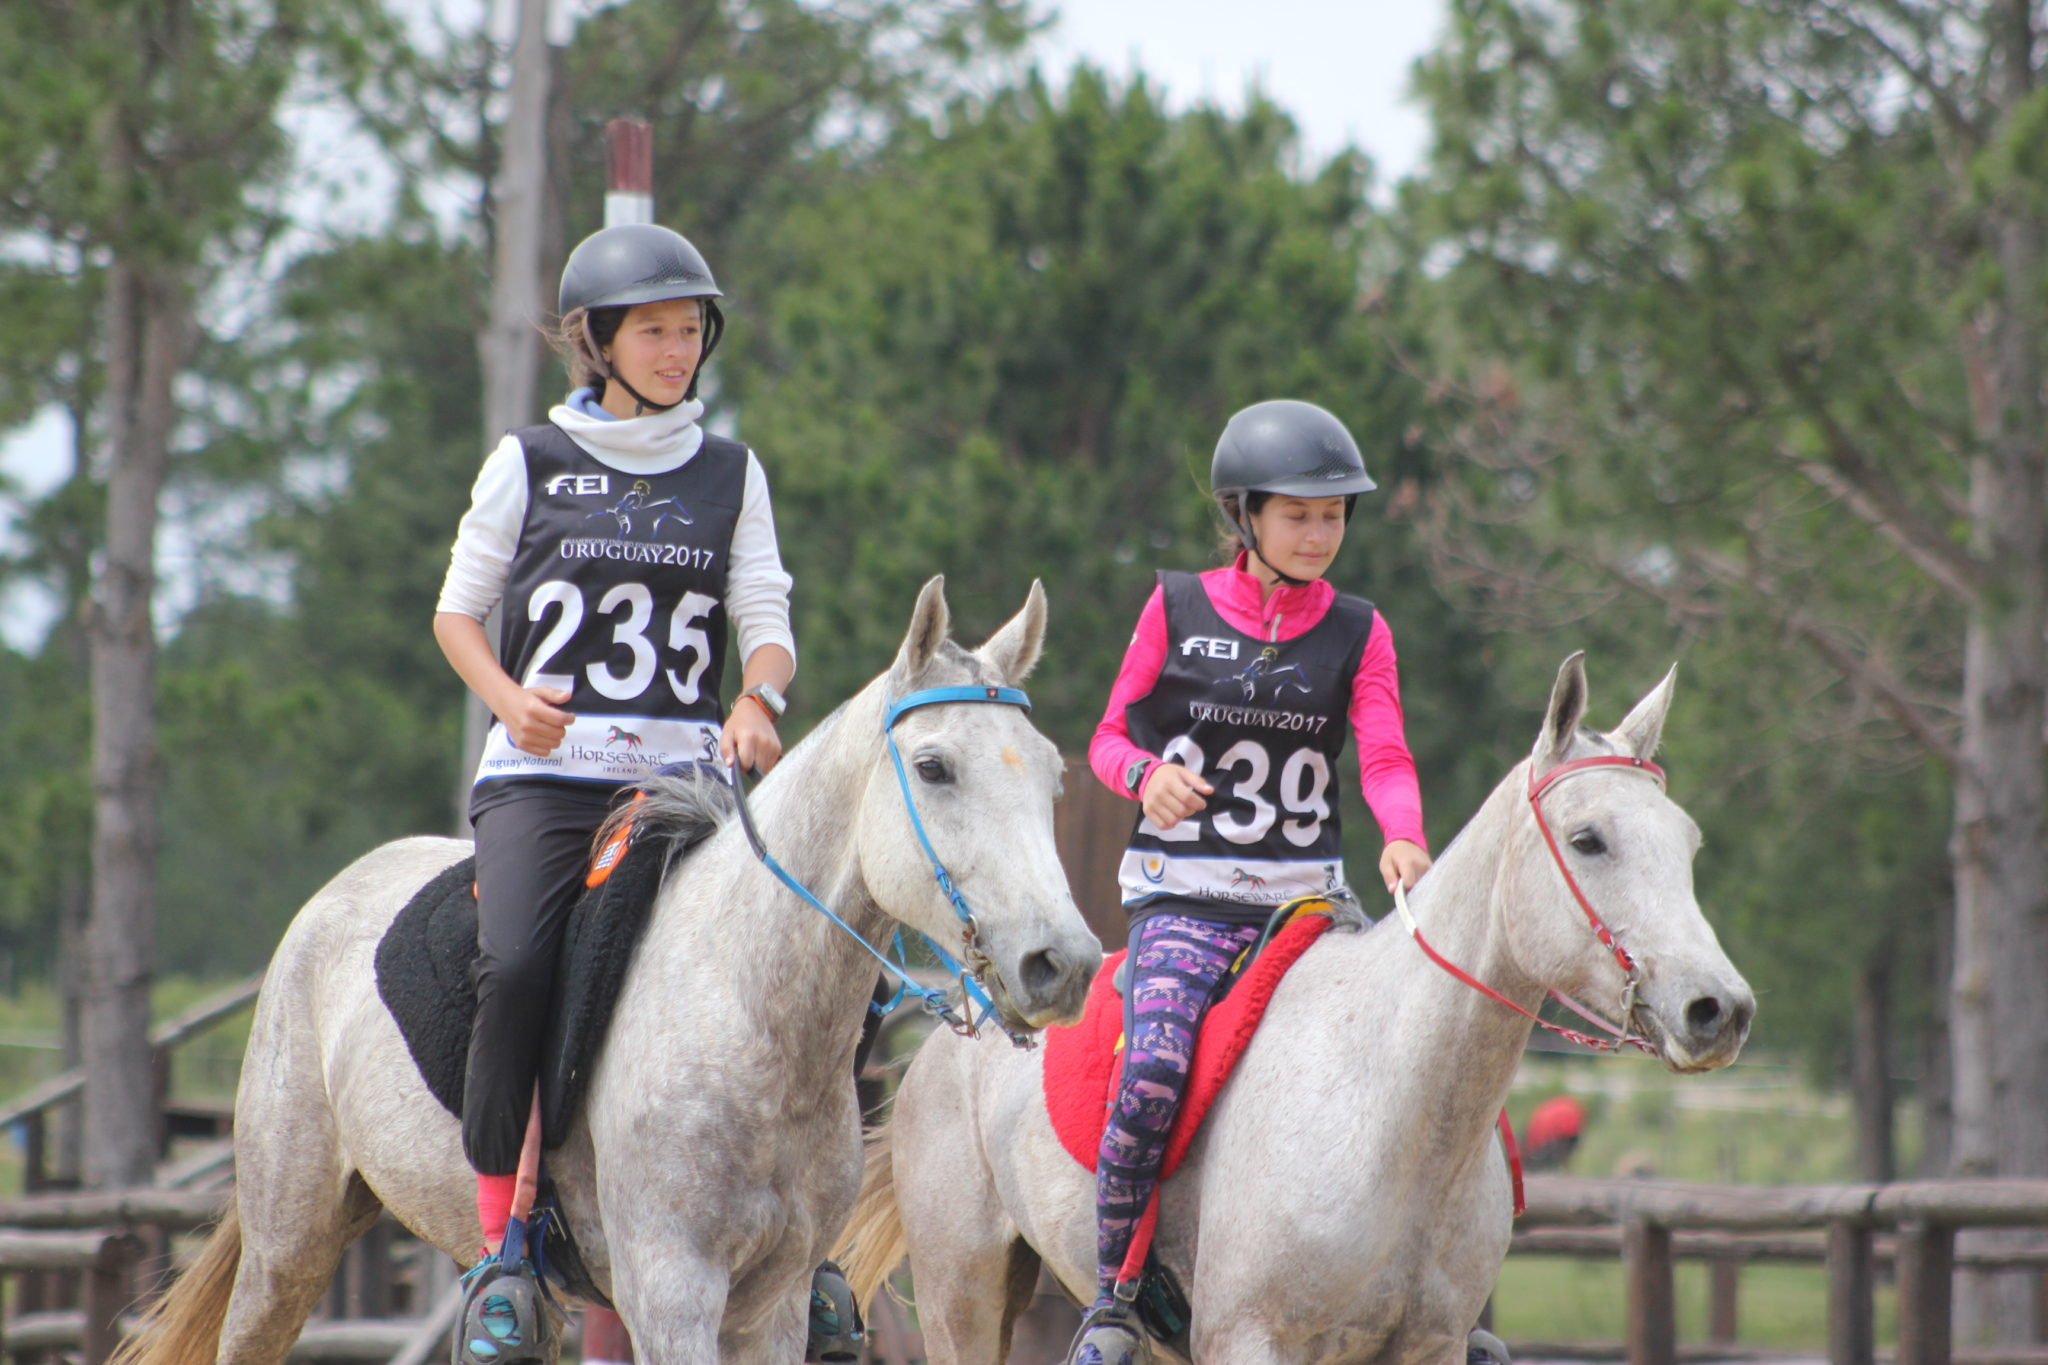 Endurance World Haras La Perseverancia. Two juniors.